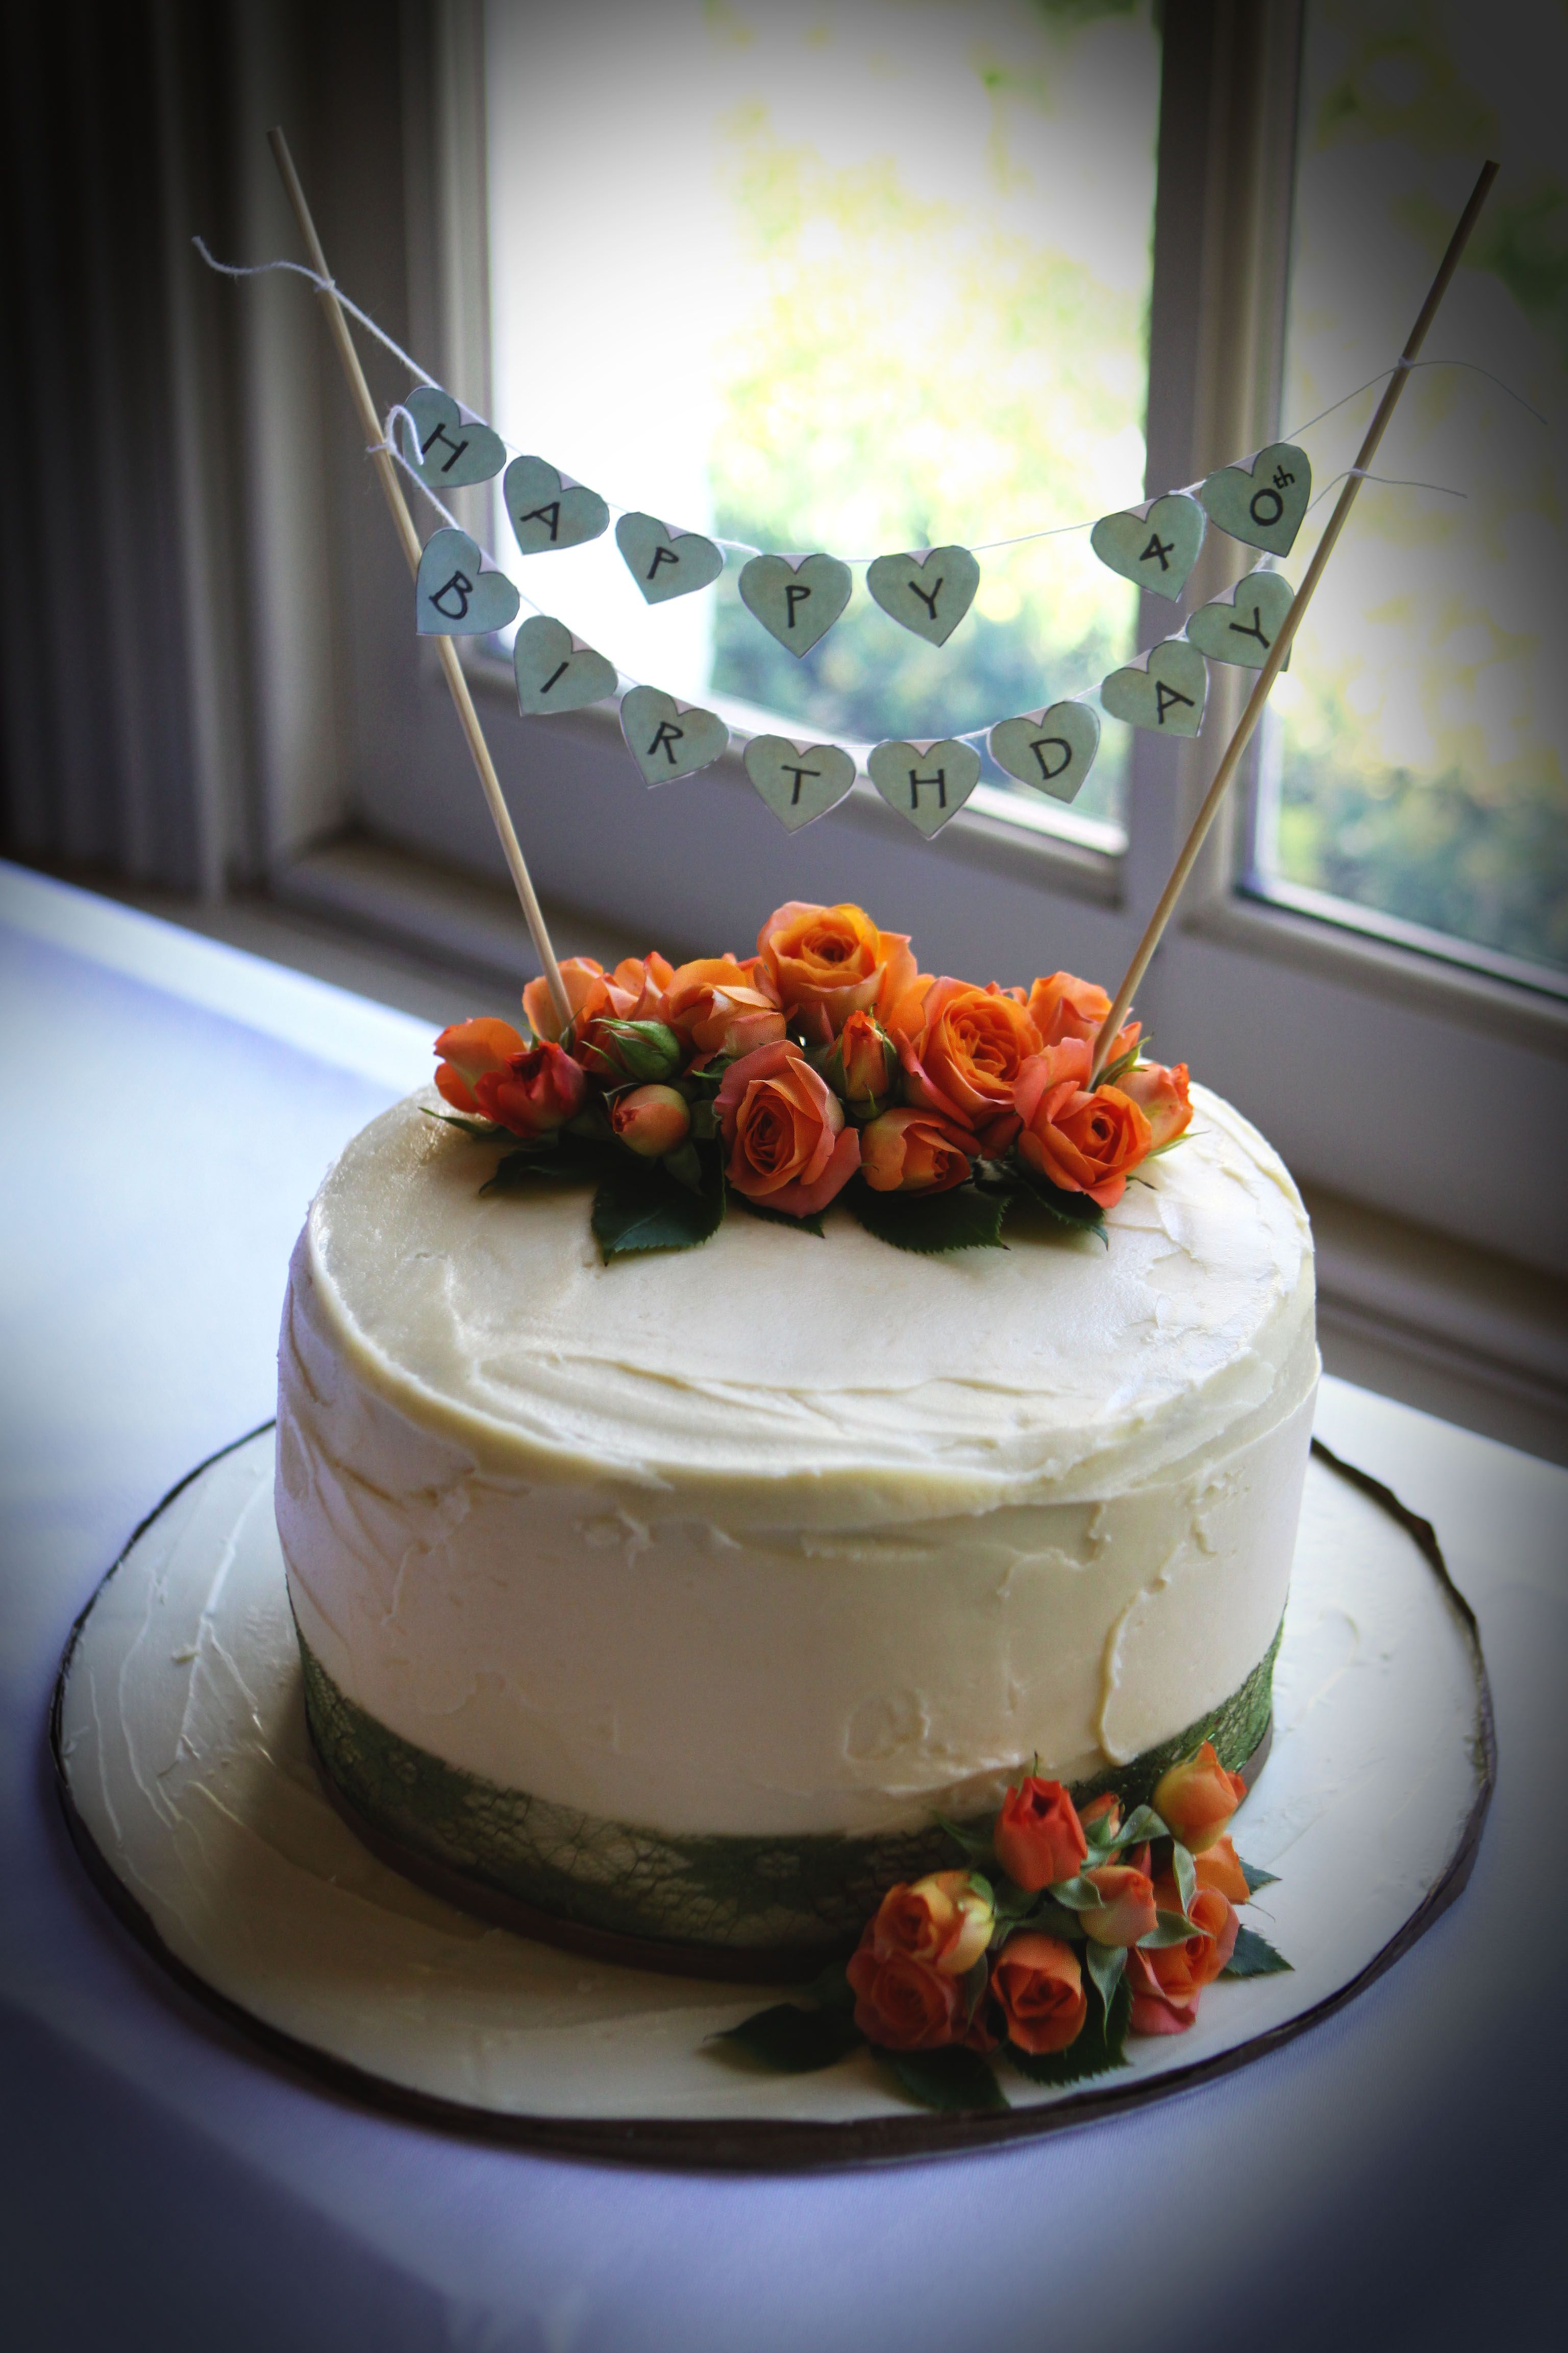 Hummingbird cake with cream cheese frosting decorated with fresh